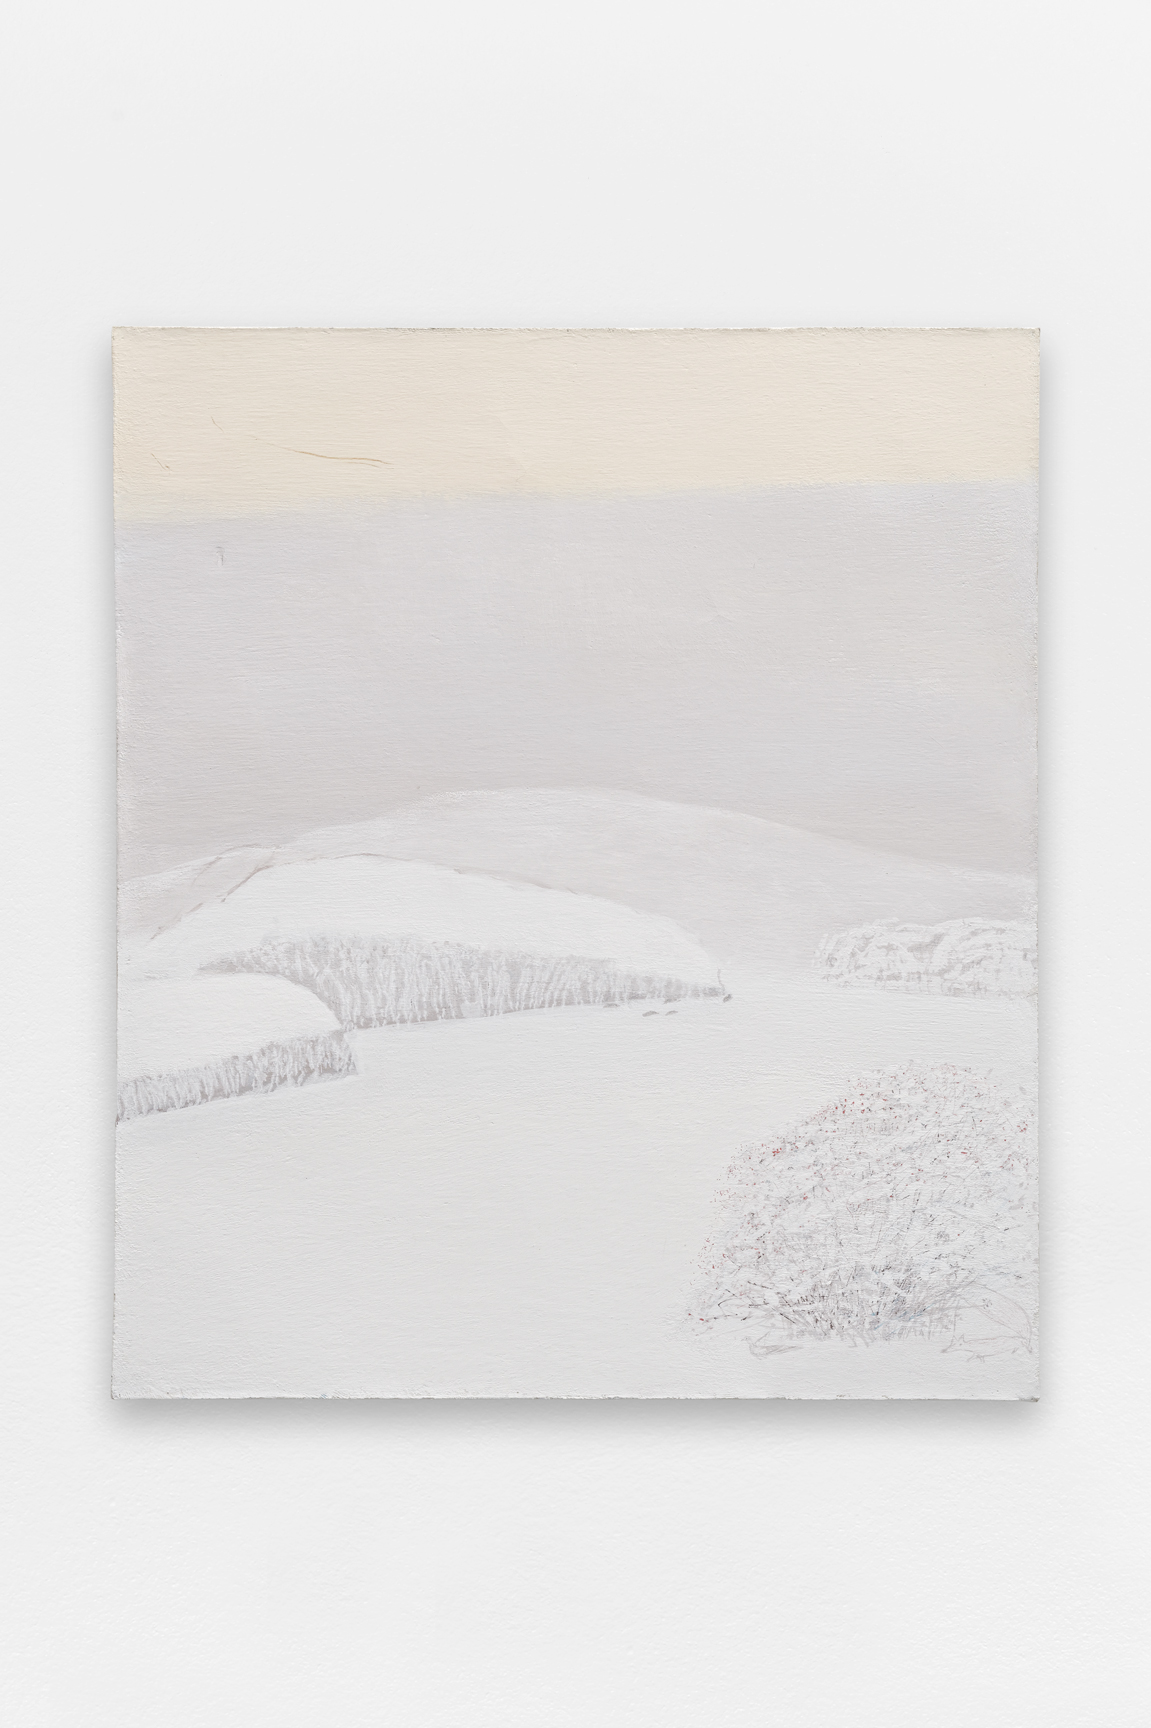 L'hiver,  Sorin Câmpan, 2019, acrylic and gesso on board, 149,5 x 129 cm 